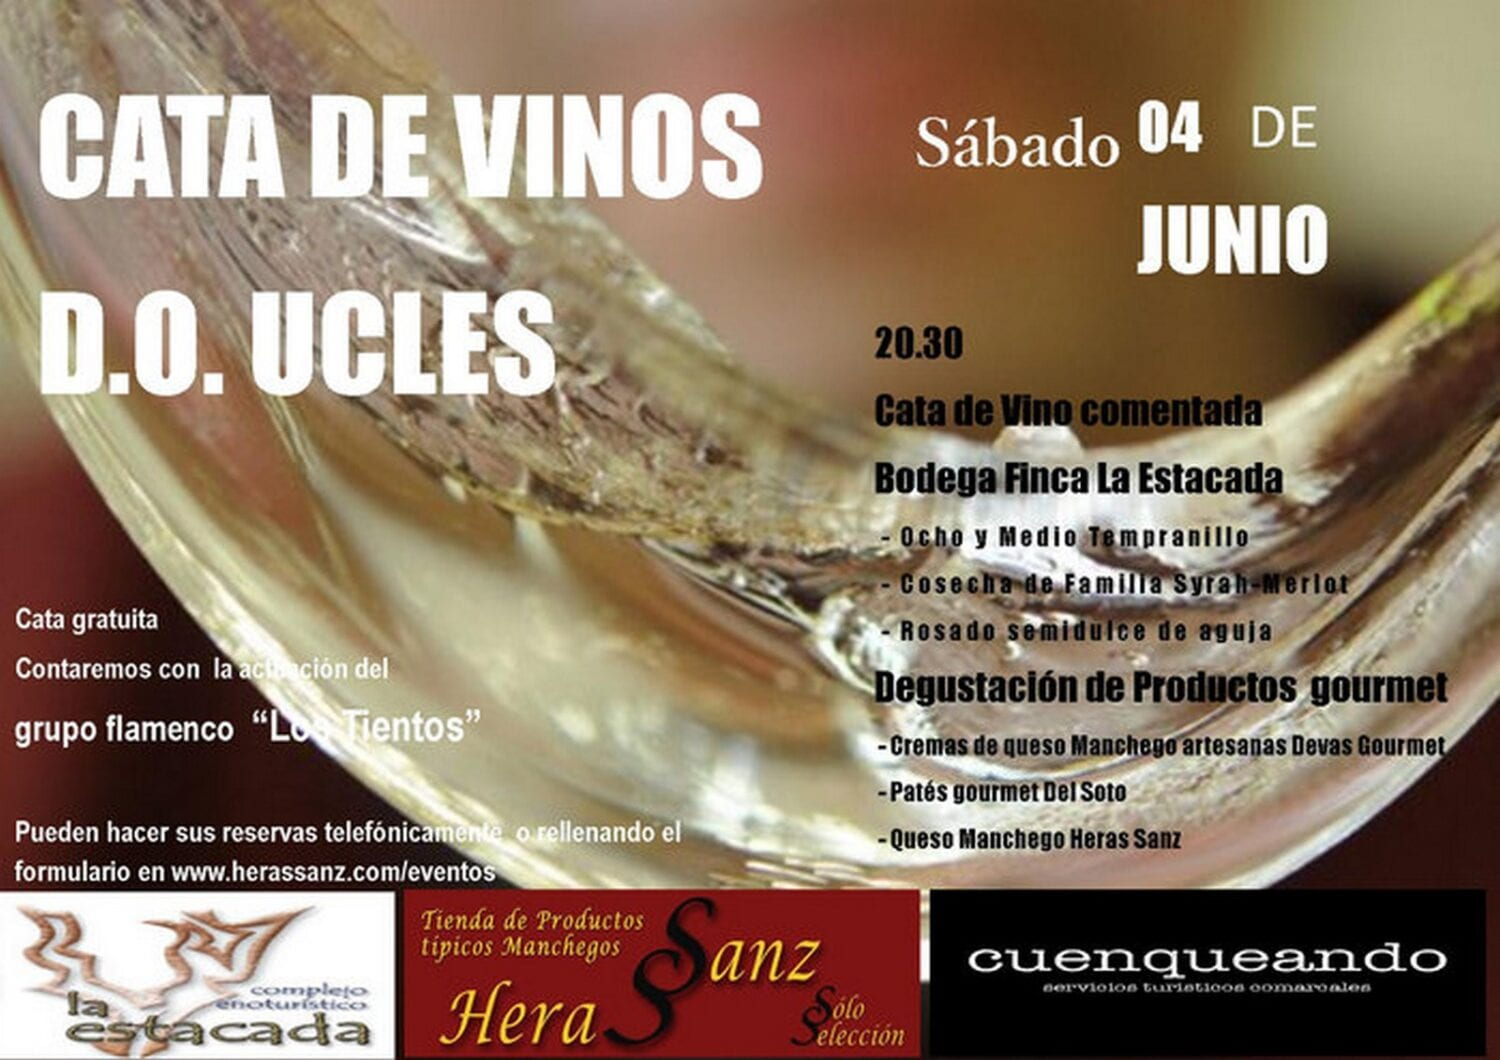 Cata_vinos_Ucles